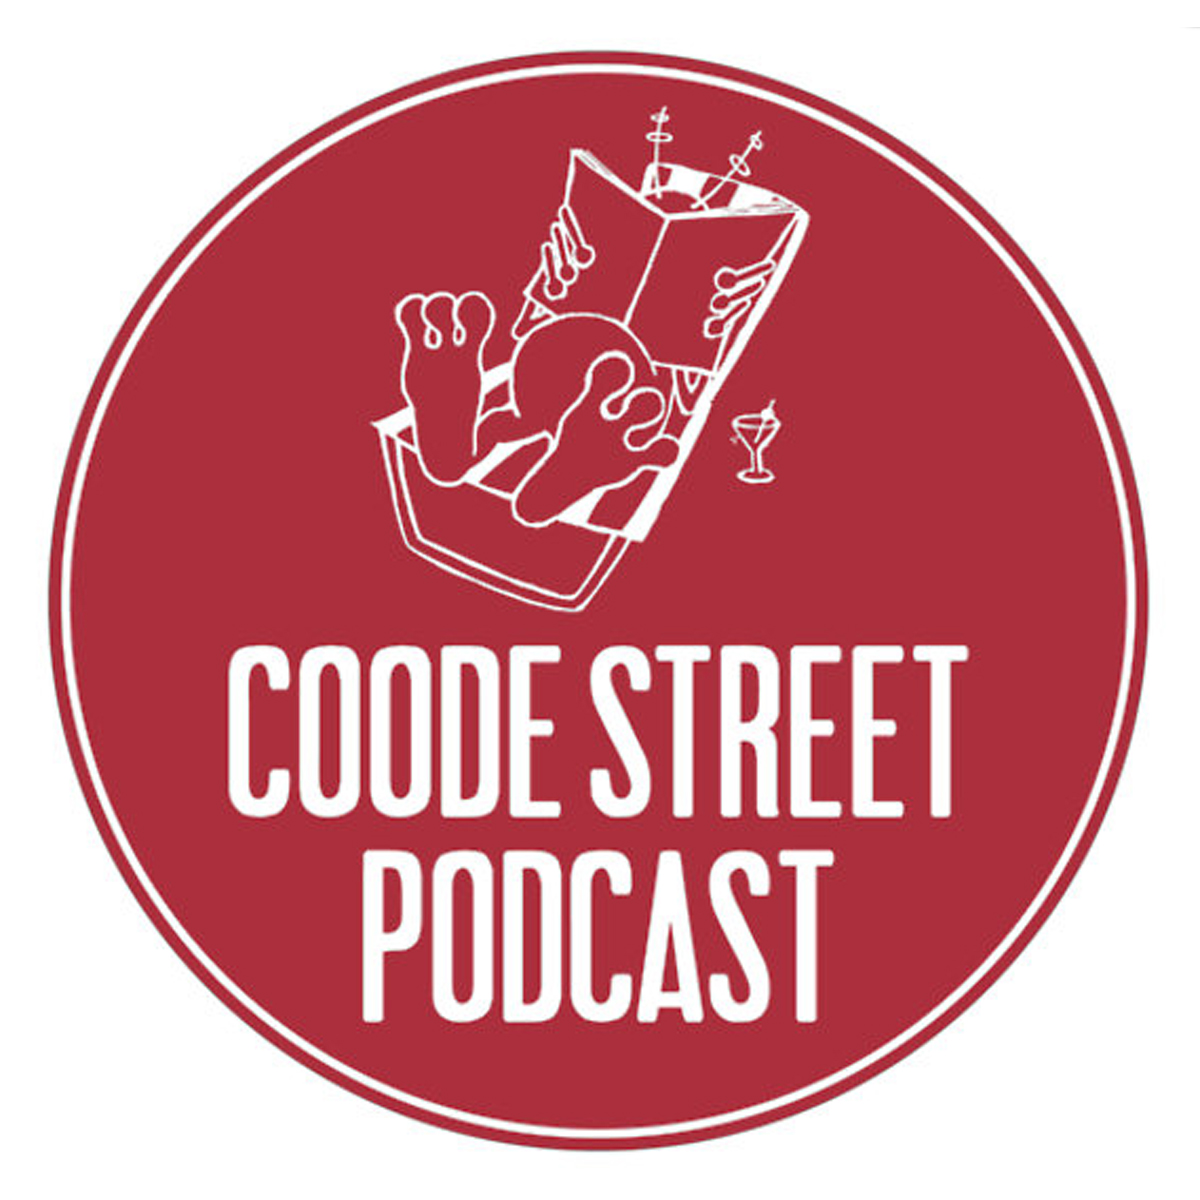 The Coode Street Podcast